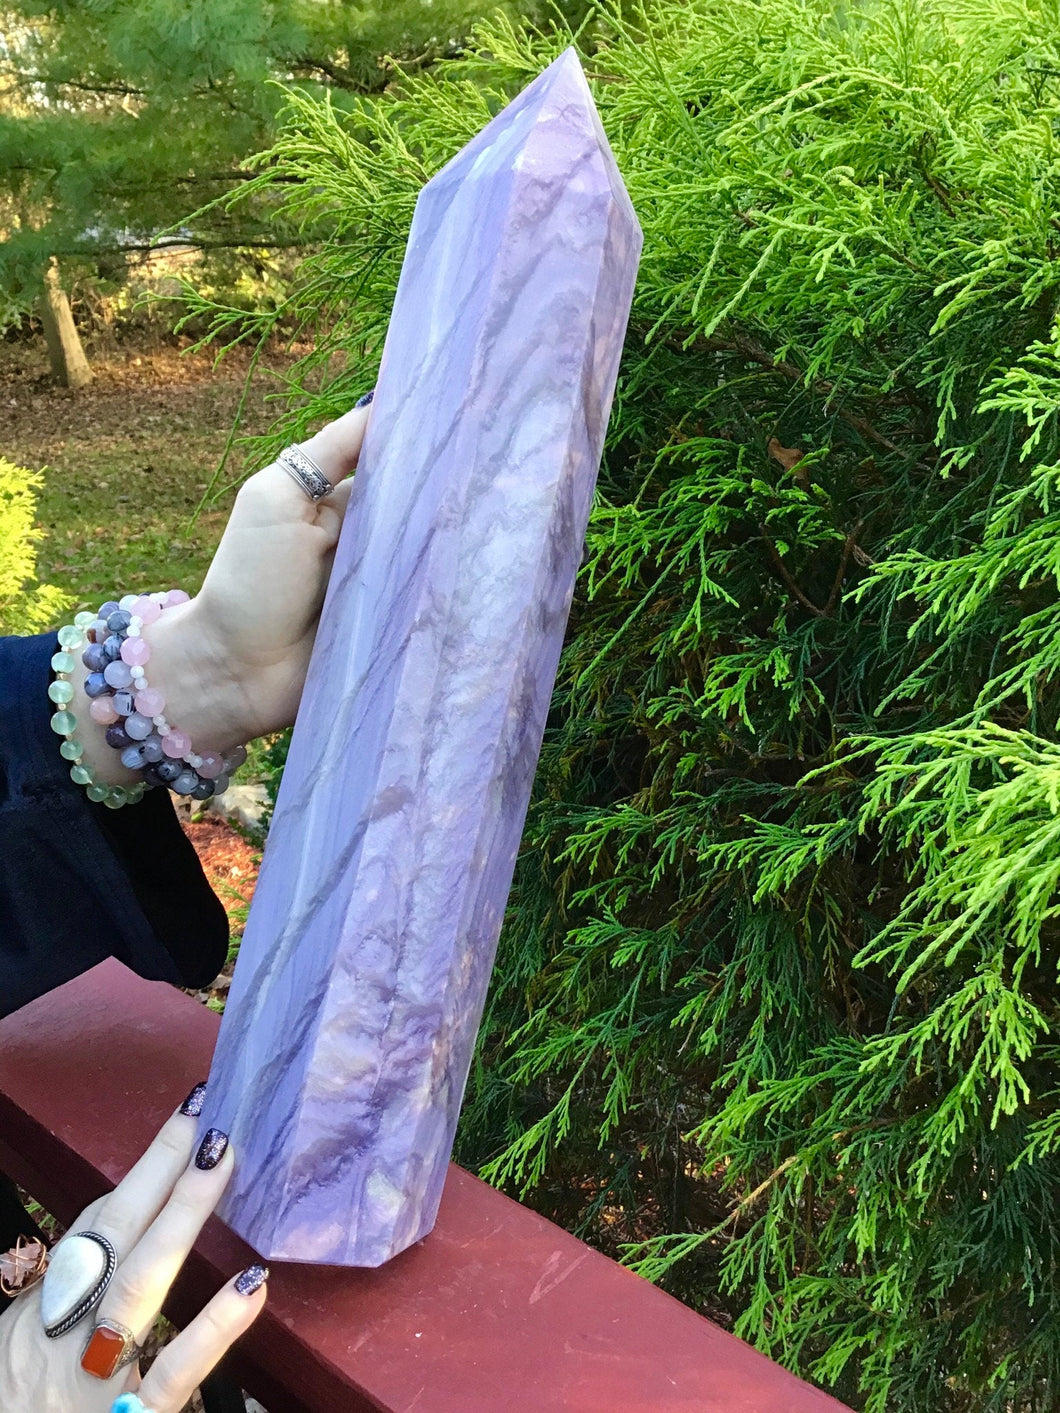 "Fluorite Generator Large 10 lb. Tower ~ 16"" Tall ~ Colorful Inclusions ~ Lavender & White Swirling Color ~ Huge Free Standing Crystal Point"